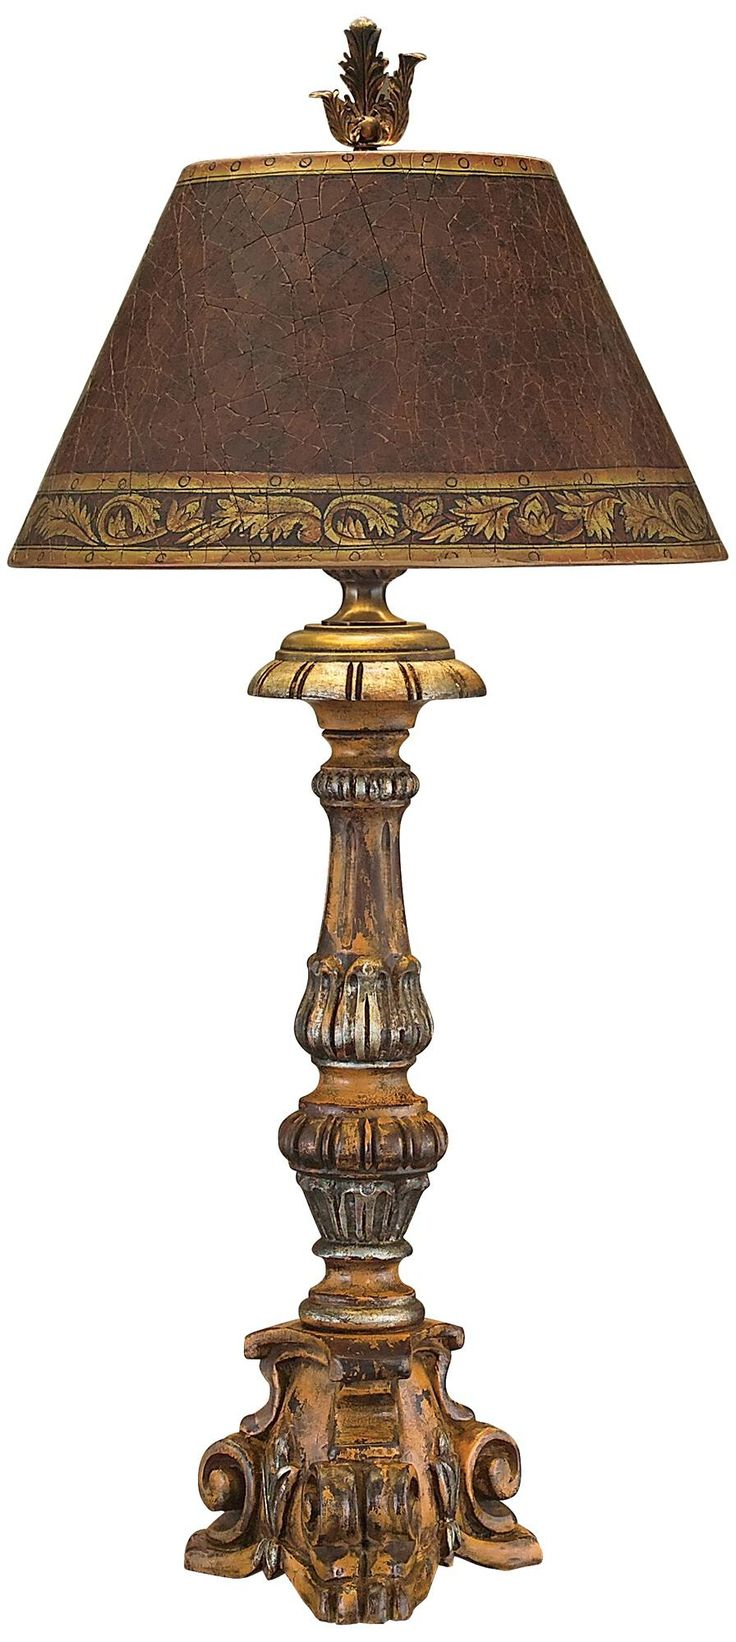 Antique wooden table lamps - John Richard Hand Carved Wood Candlestick Table Lamp